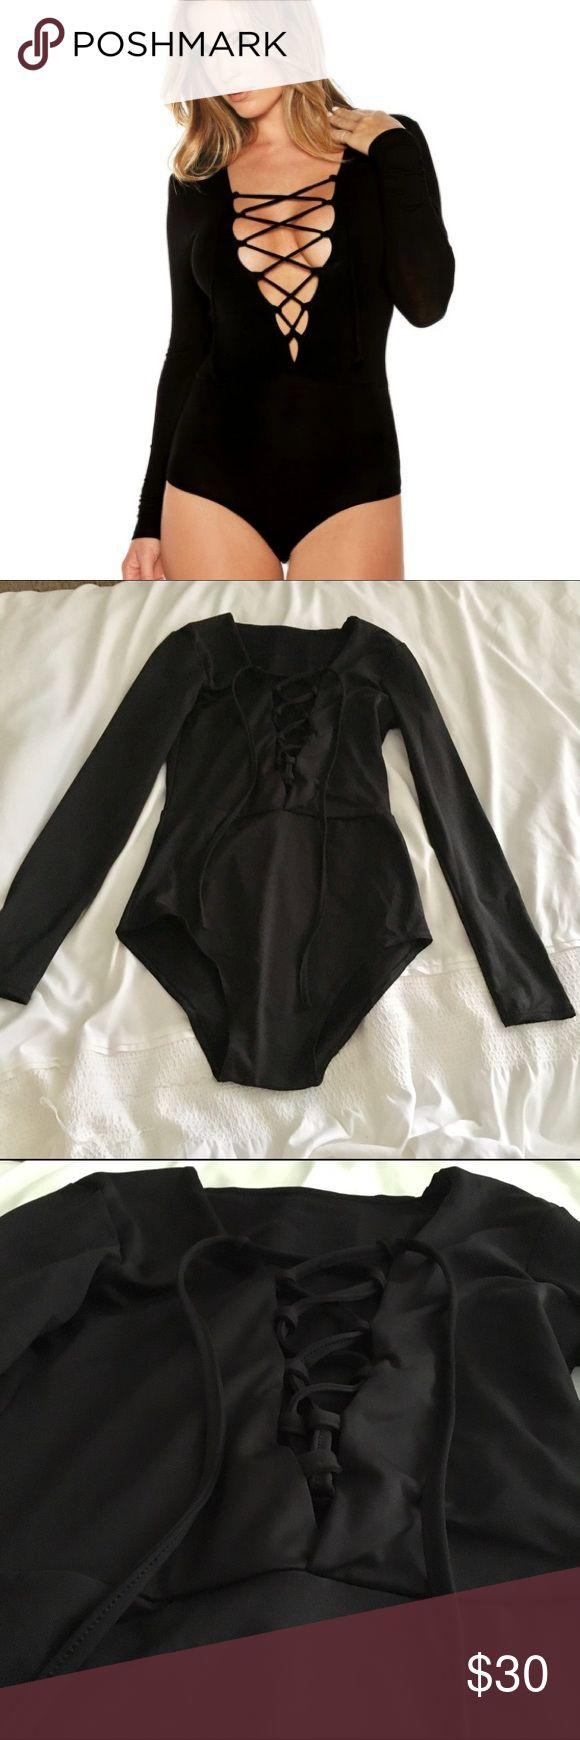 Crisscross long sleeve v-neck bodysuit Super trendy style right now! Brand new / never worn / NWT. High quality fabric and very flattering when on. Not topshop / here for views. Make me an offer! Topshop Tops Tees - Long Sleeve